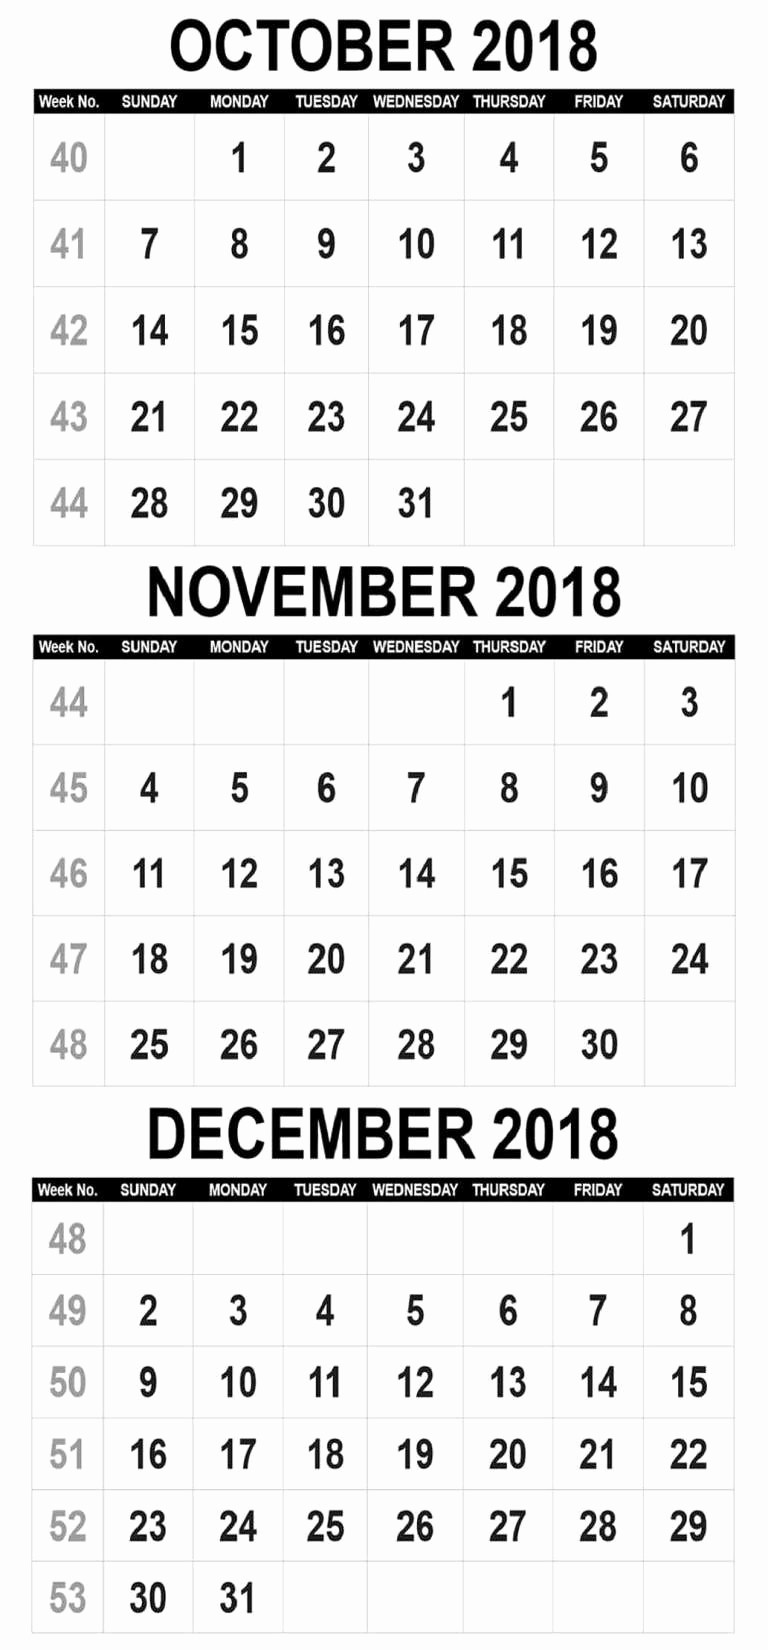 October 2018 Printable Calendar Word Best Of Editable October 2018 Calendar Word